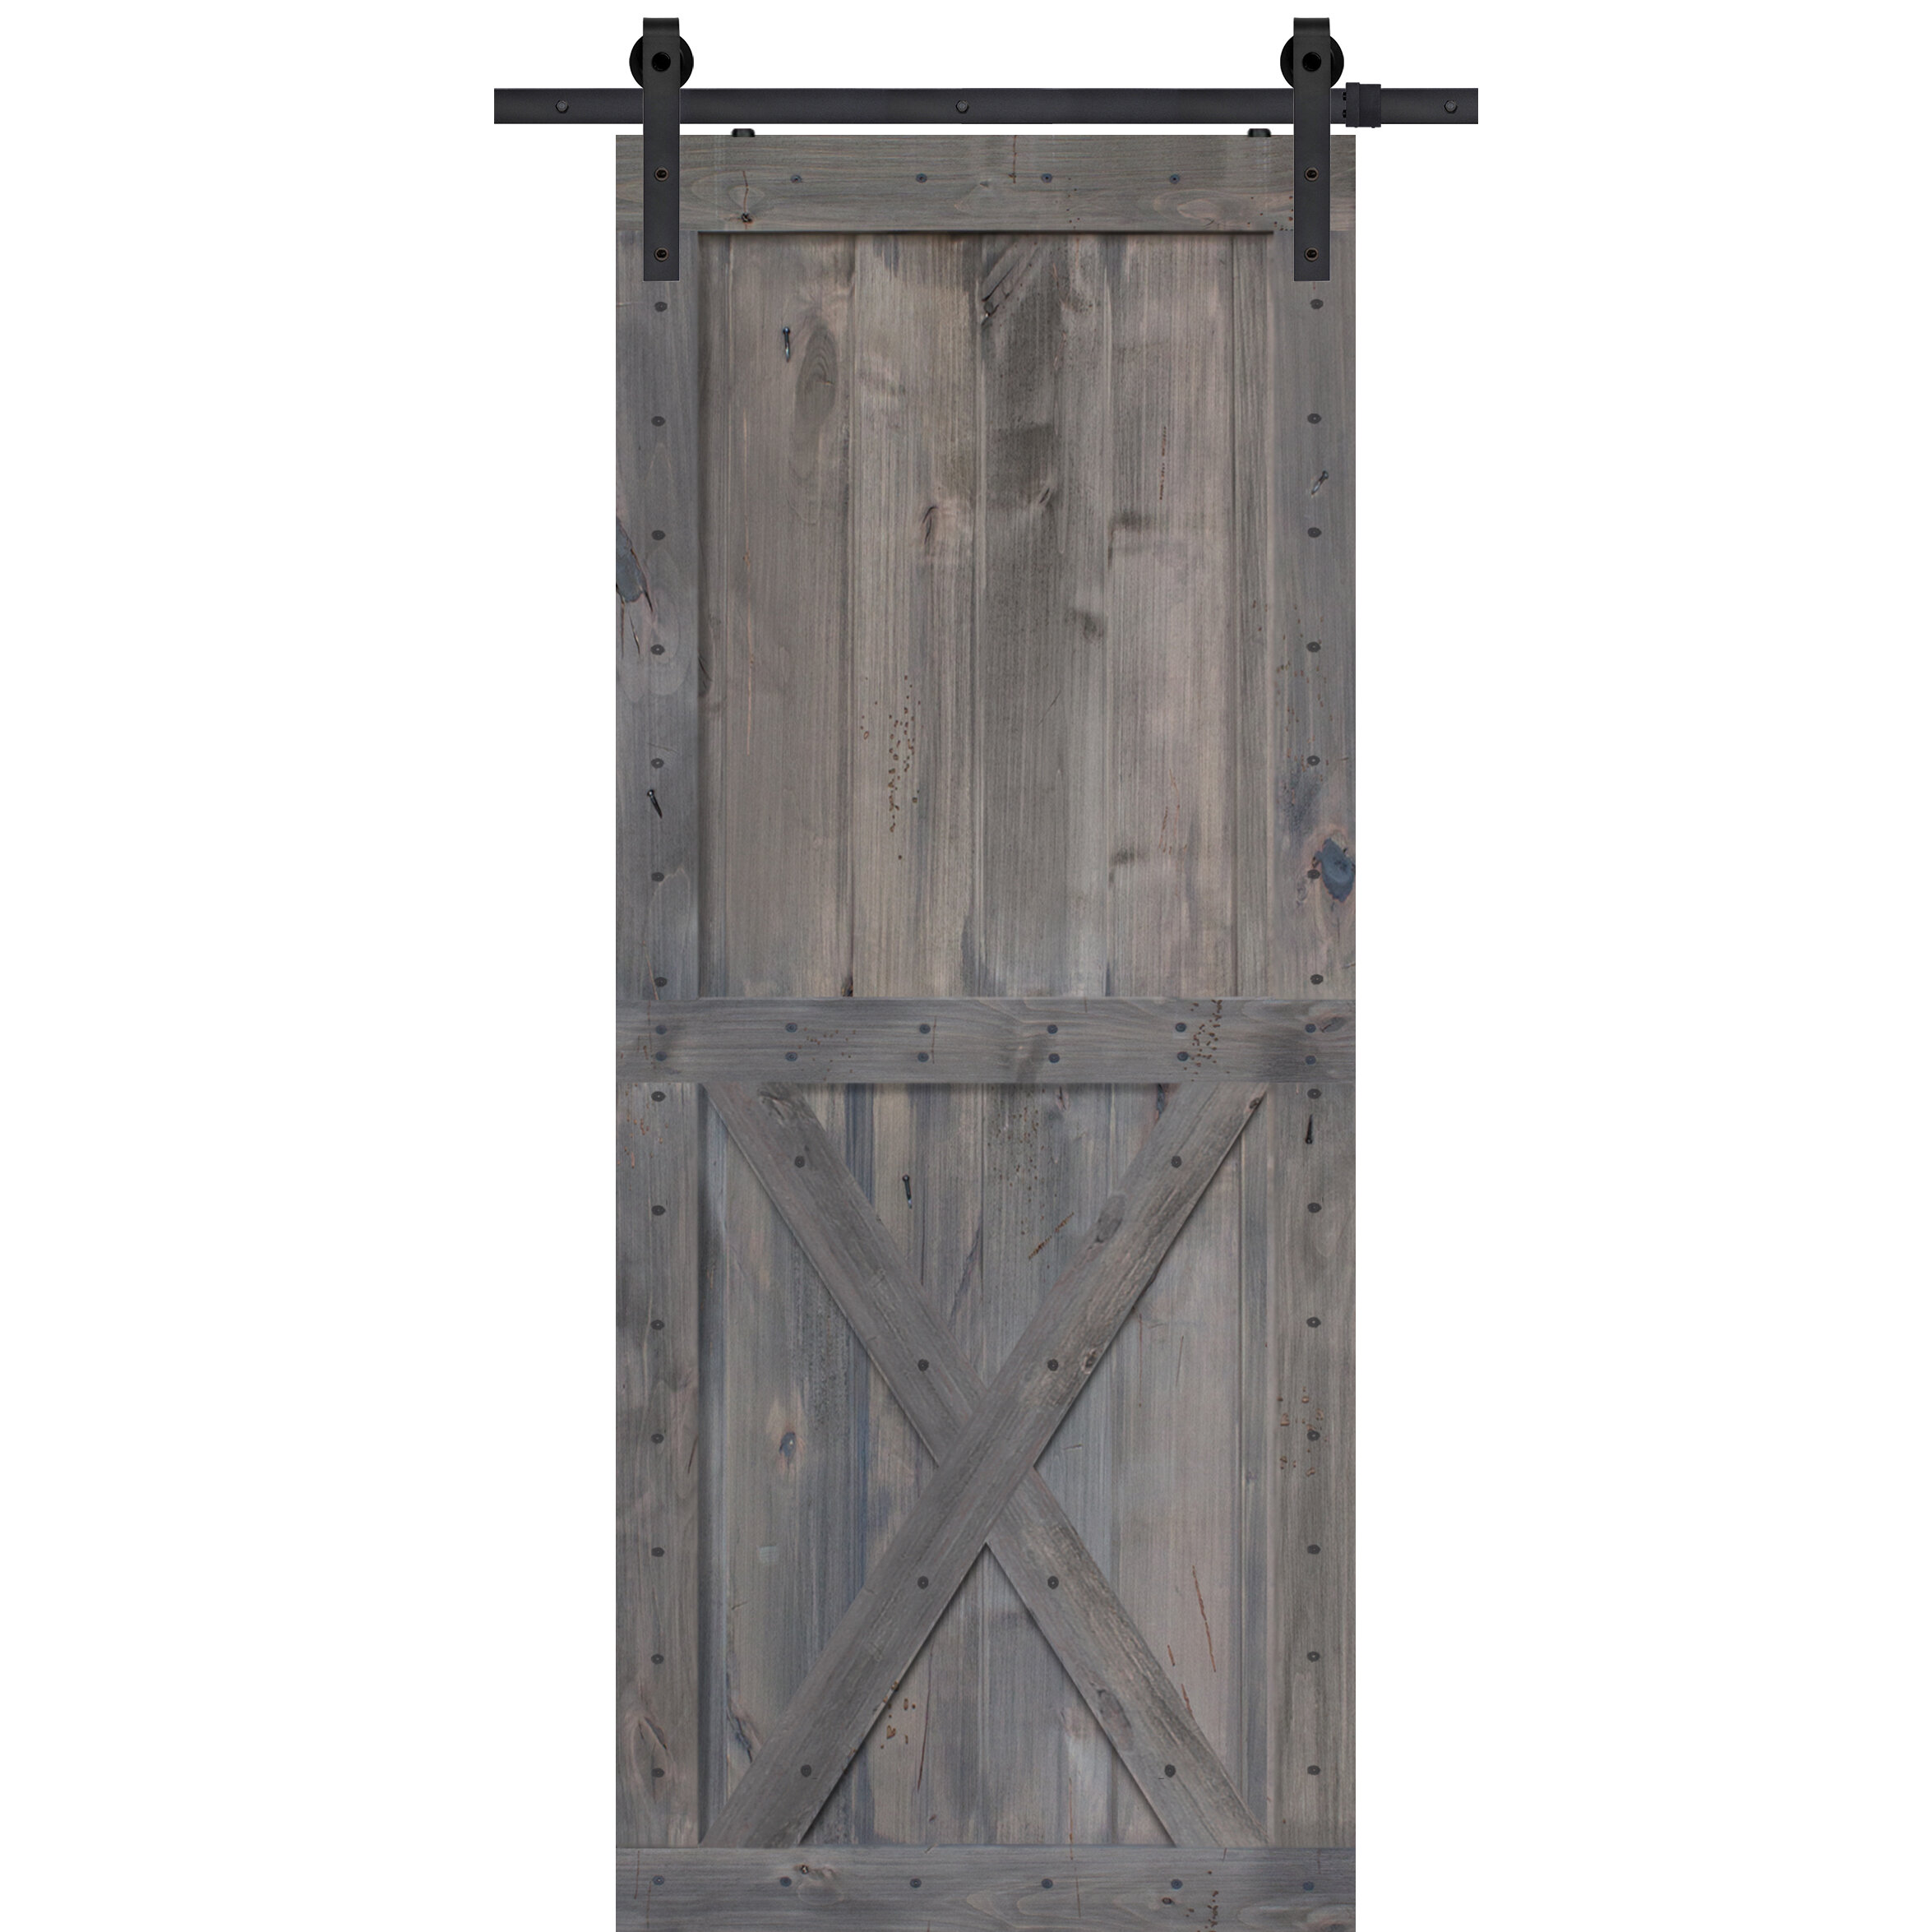 Barndoorz Paneled Wood Barn Door Without Installation Hardware Kit